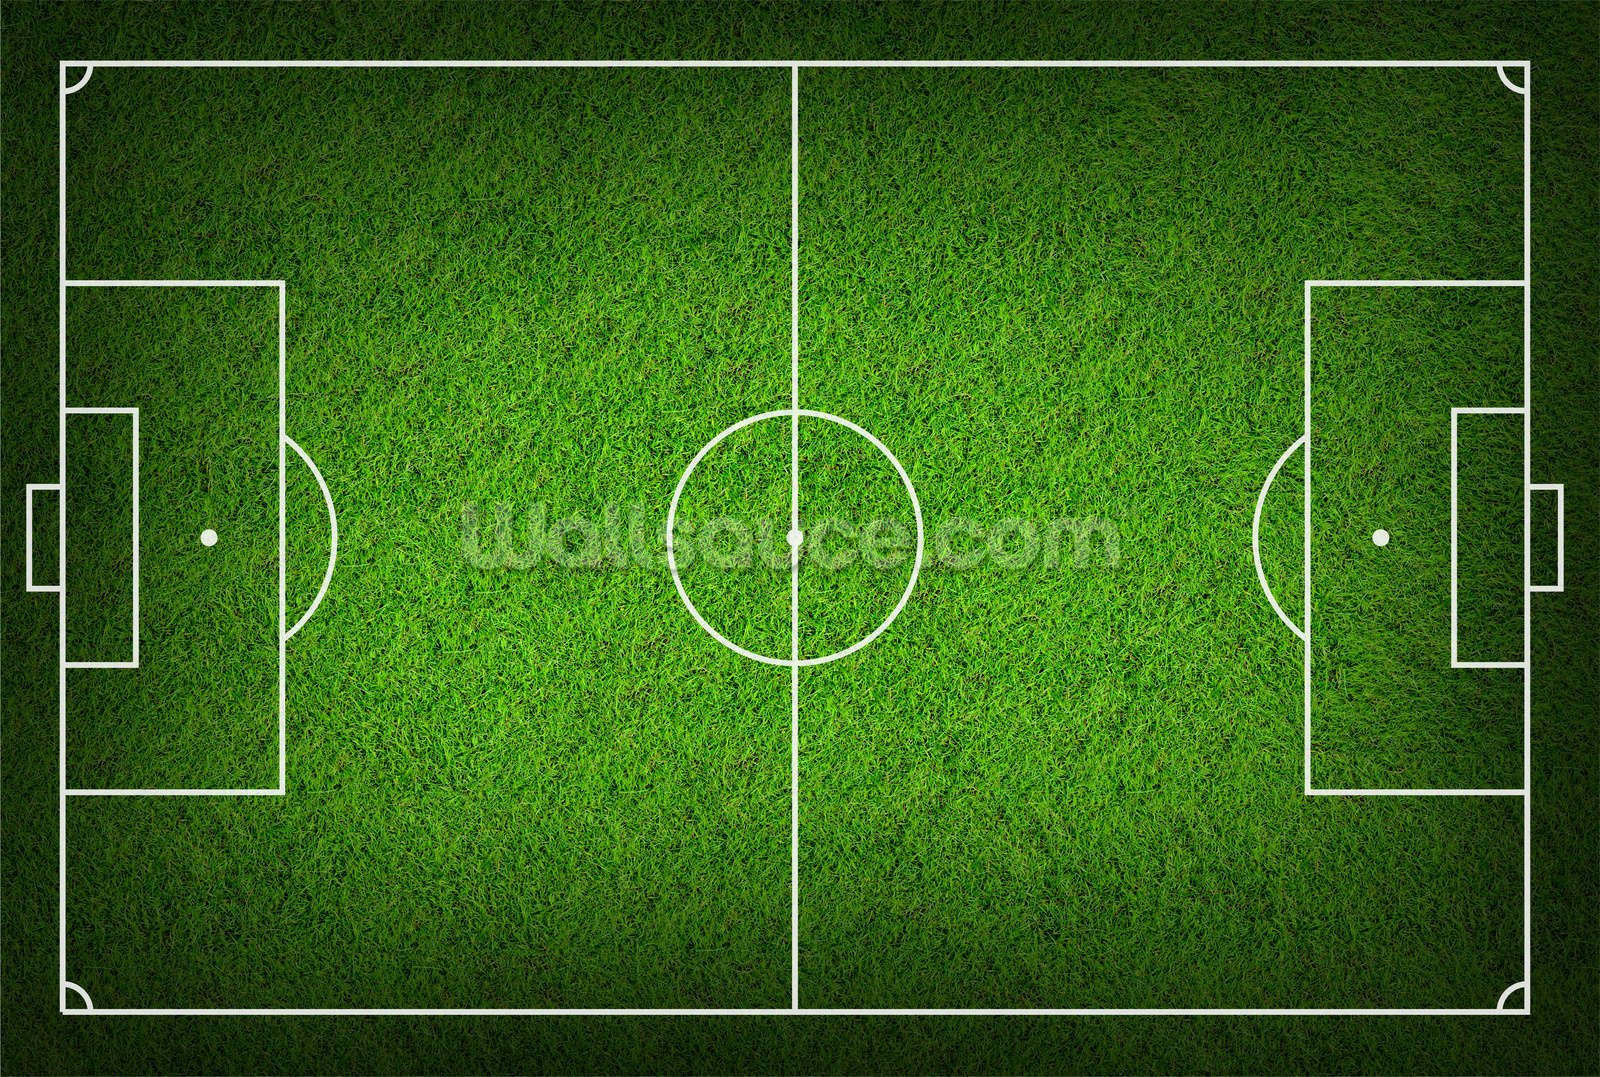 Football Pitch Wall Mural Photo Wallpaper Part 41